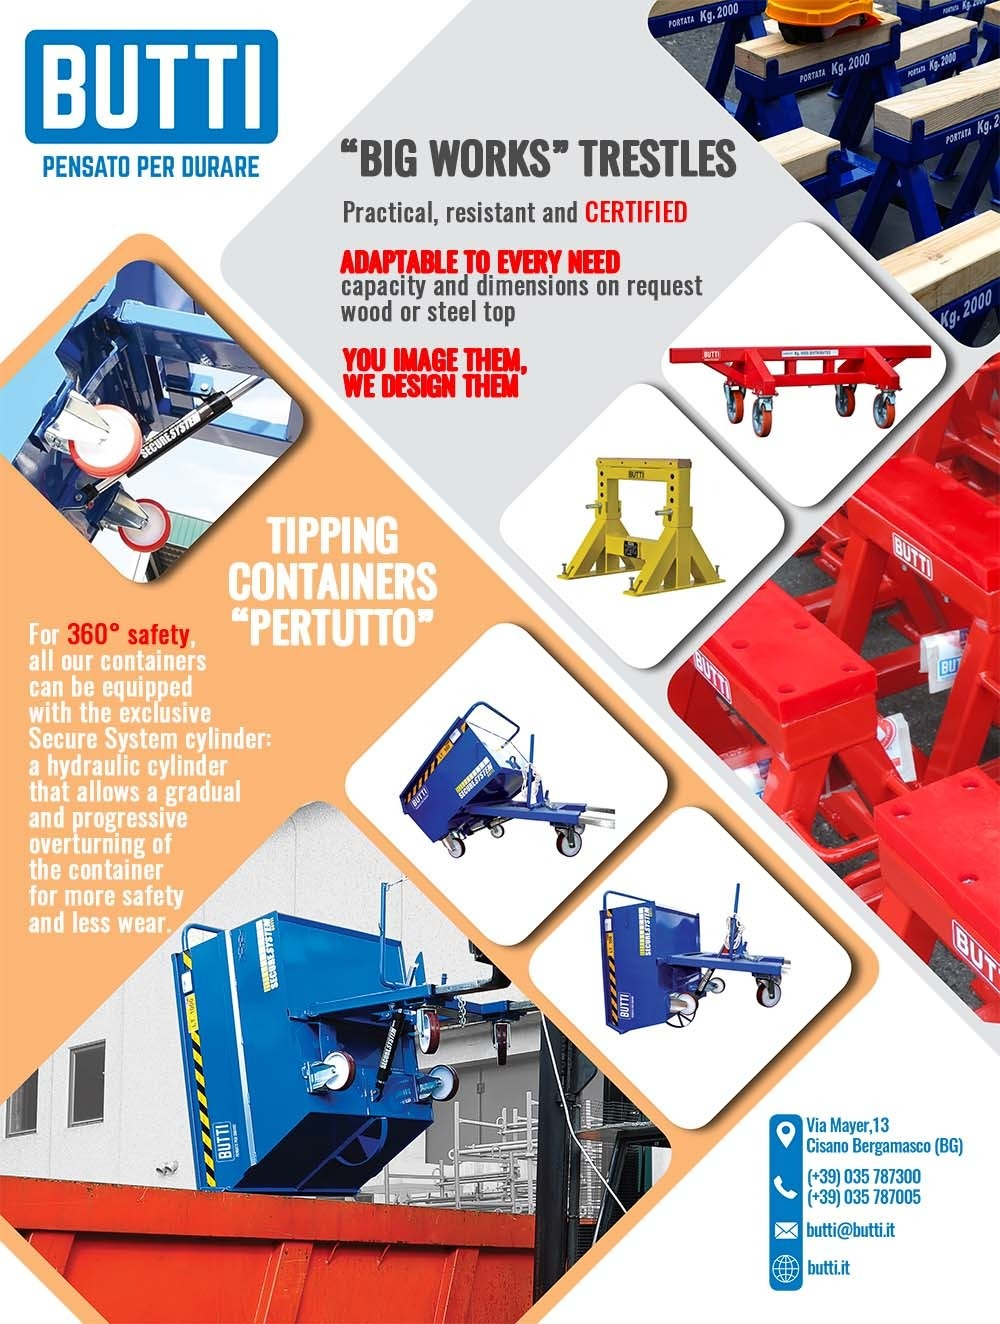 Trestles and tipping containers Butti